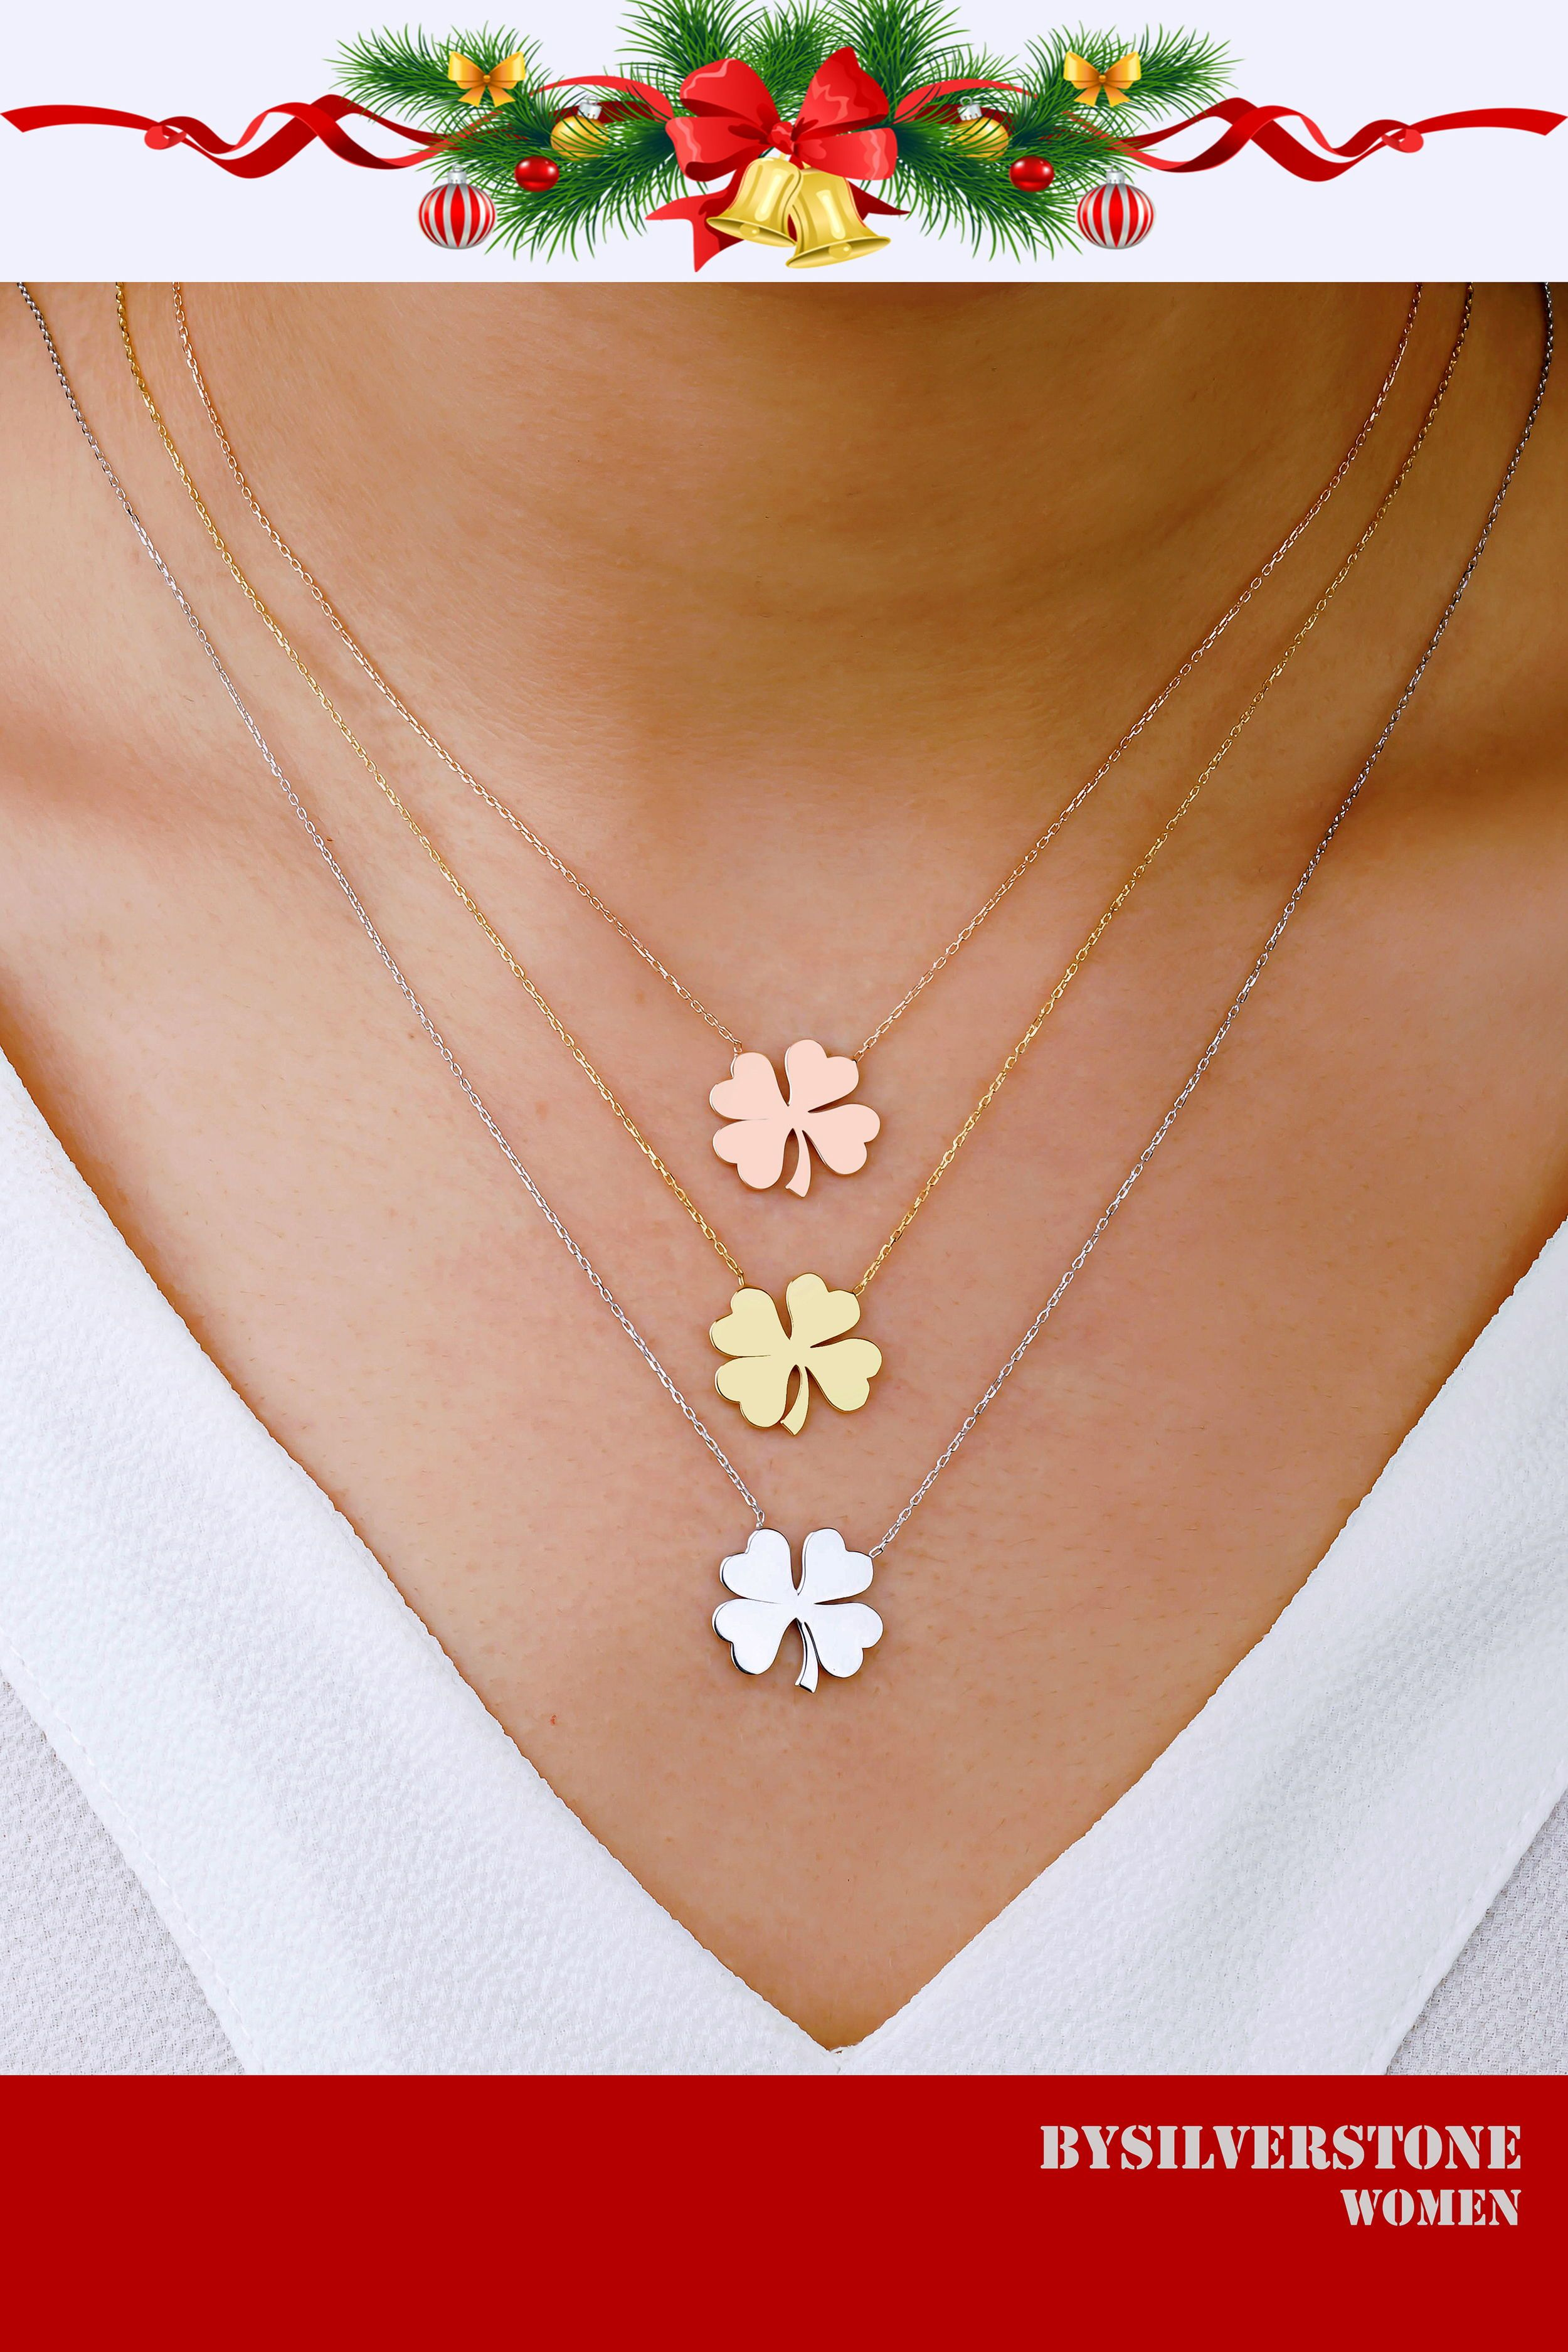 Gold Clover Necklace Decilate Gold Pendant 18k Gold Clover Etsy Clover Necklace Four Leaf Clover Necklace 14k Gold Chain